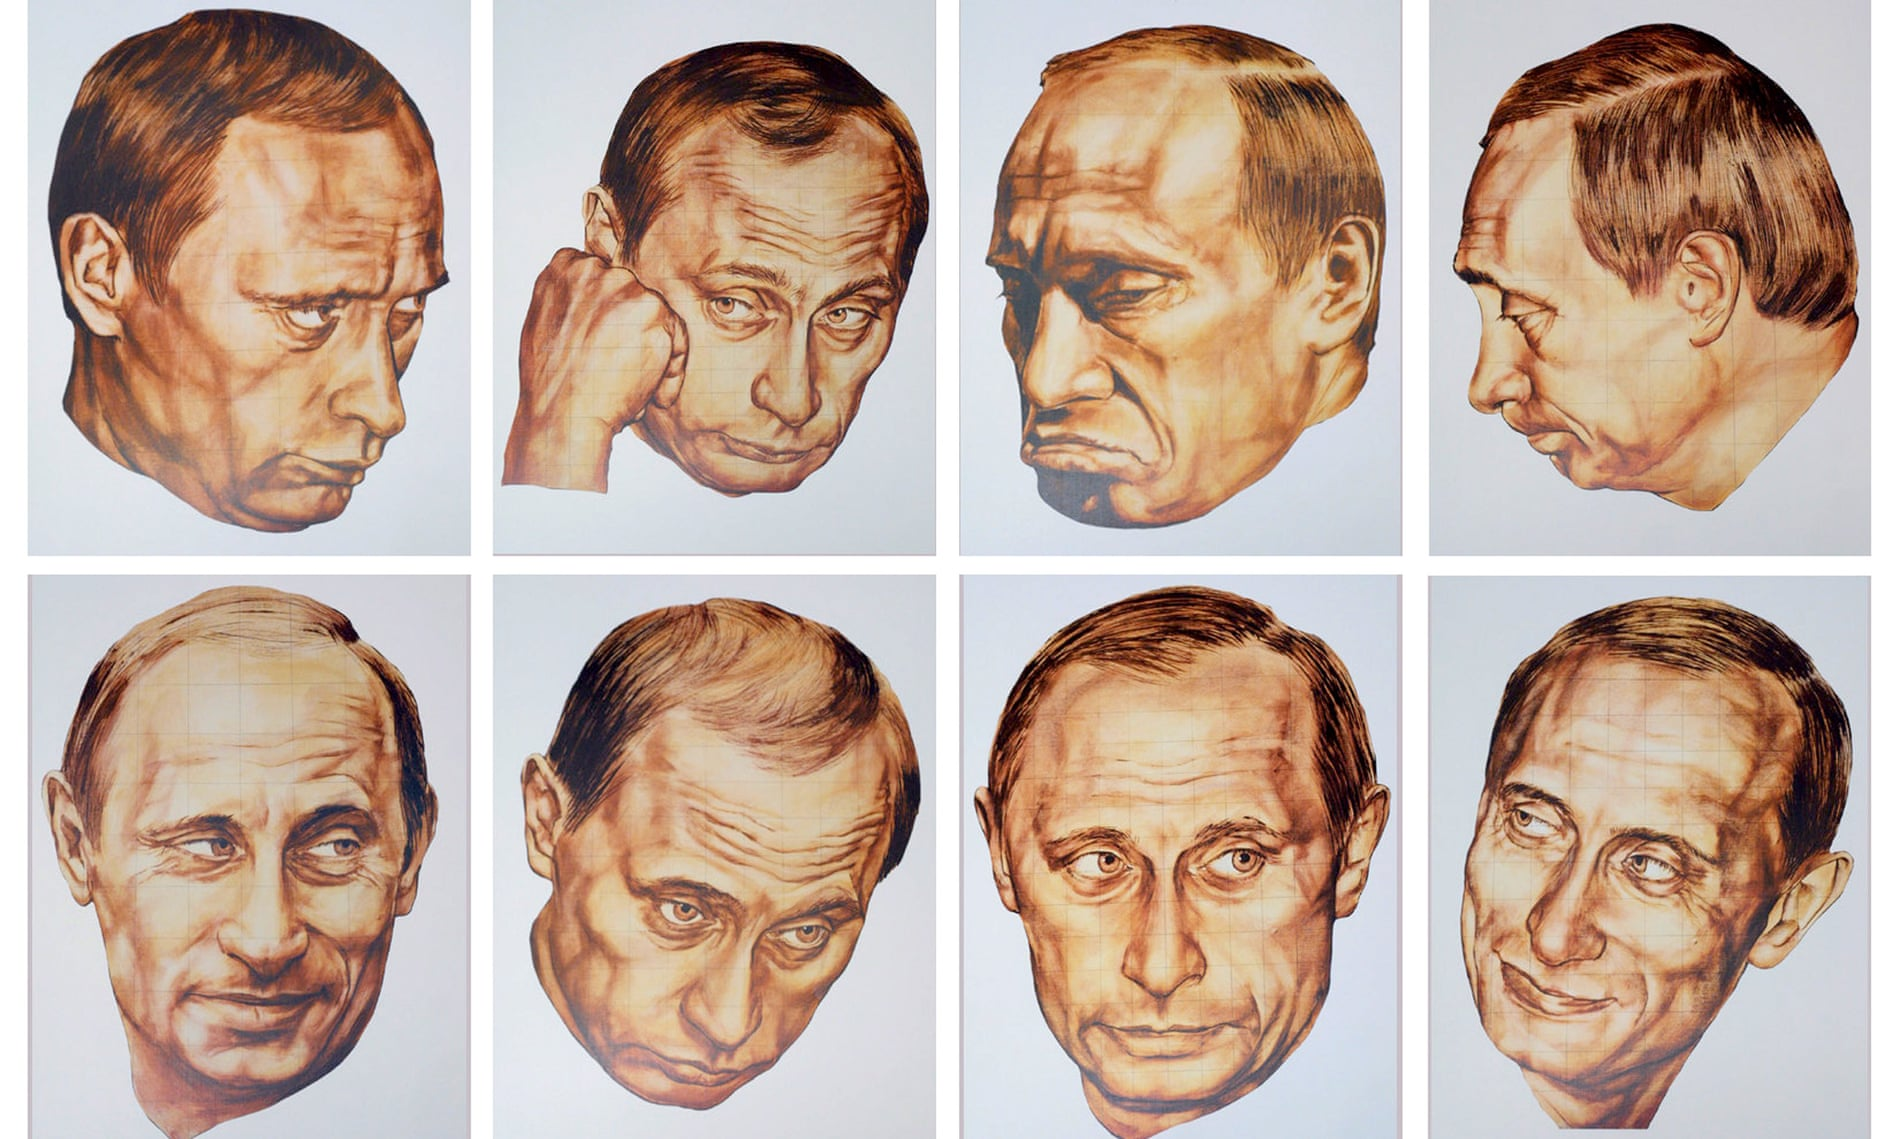 Killer, Kleptocrat, Genius, Spy: The Many Myths Of Vladimir Putin